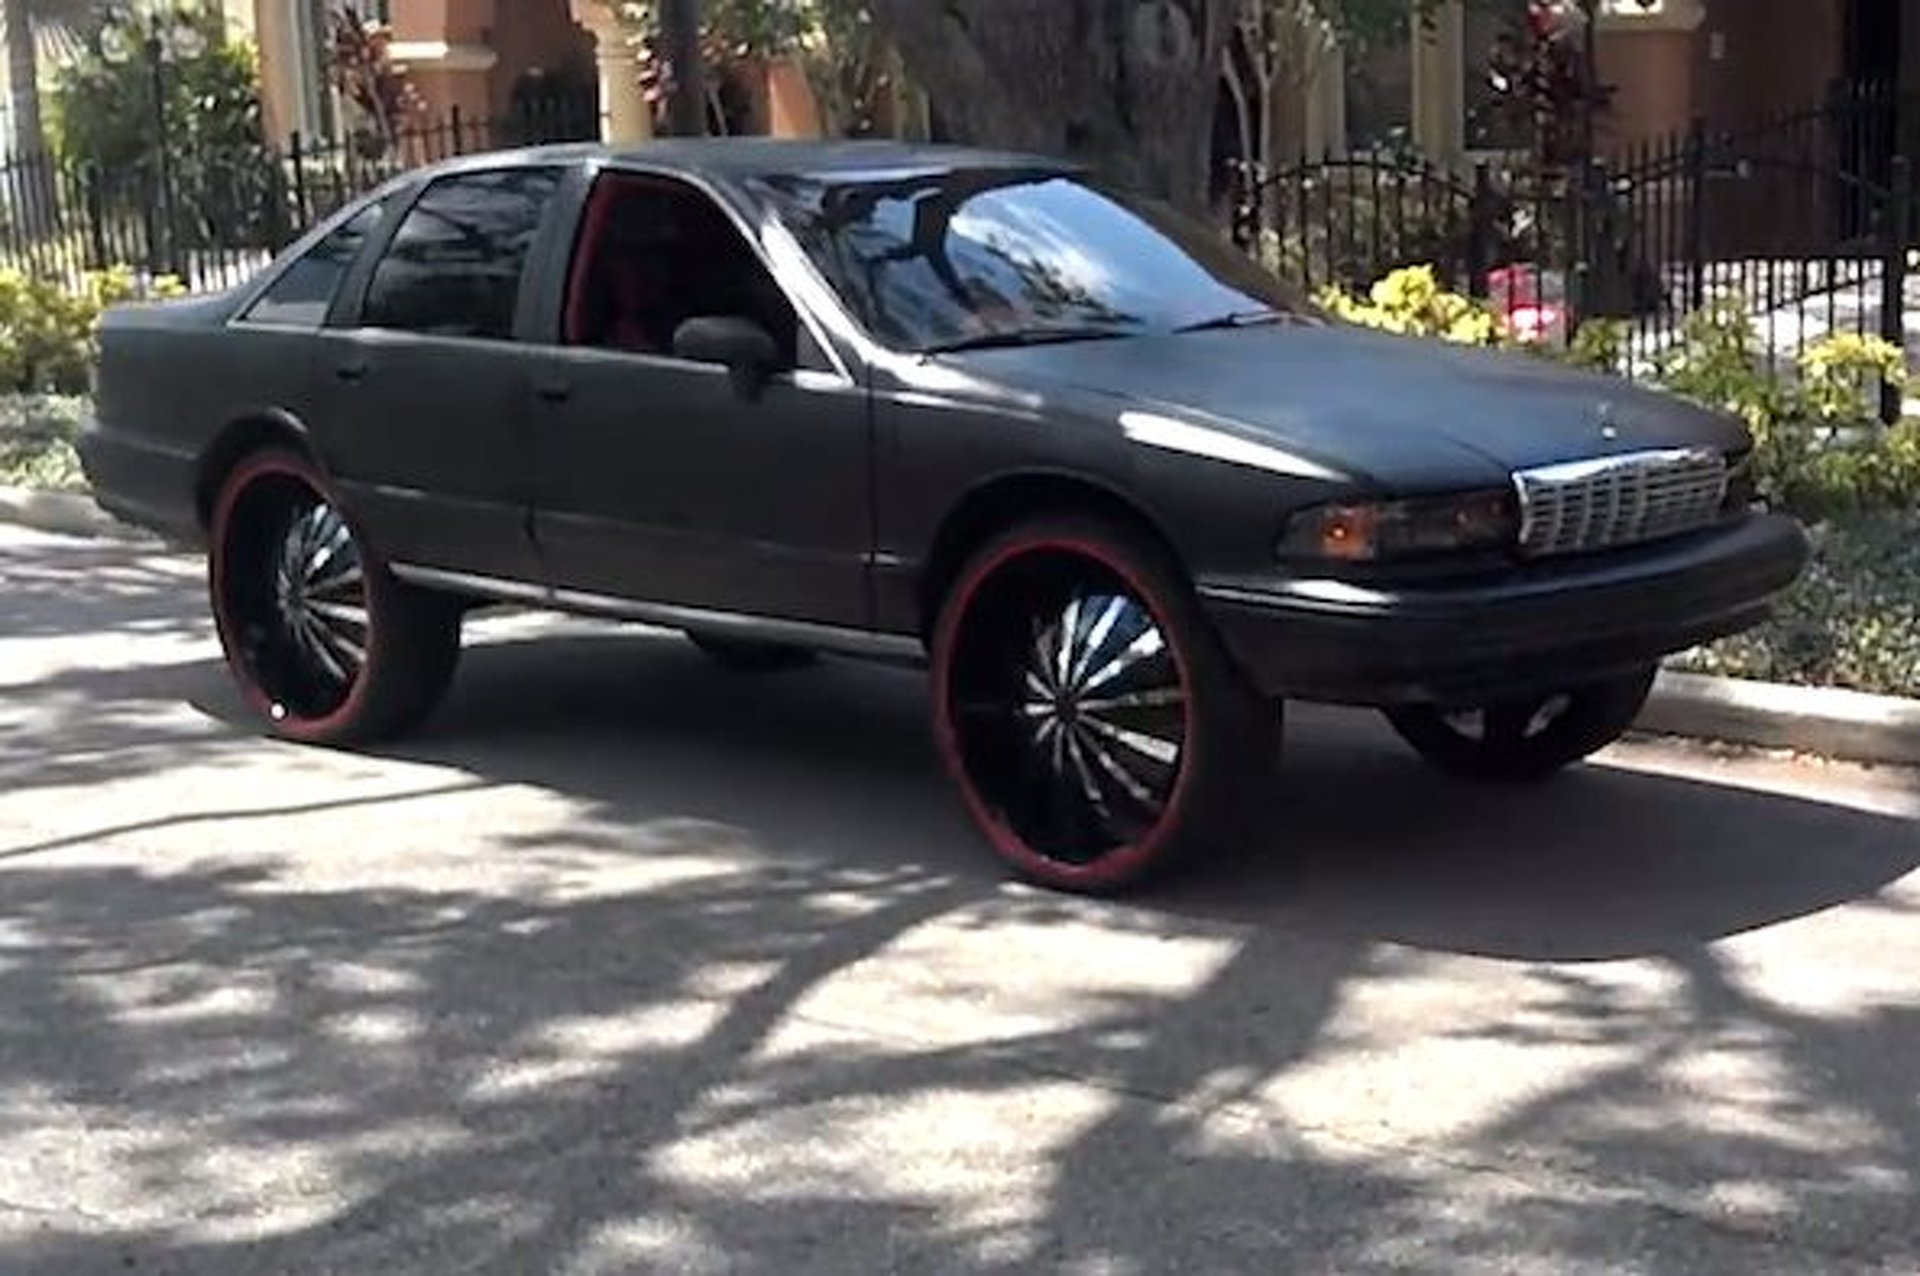 Patriots RB LeGarrette Blount's Redonkulous Lifted Chevy Caprice [w/videos]